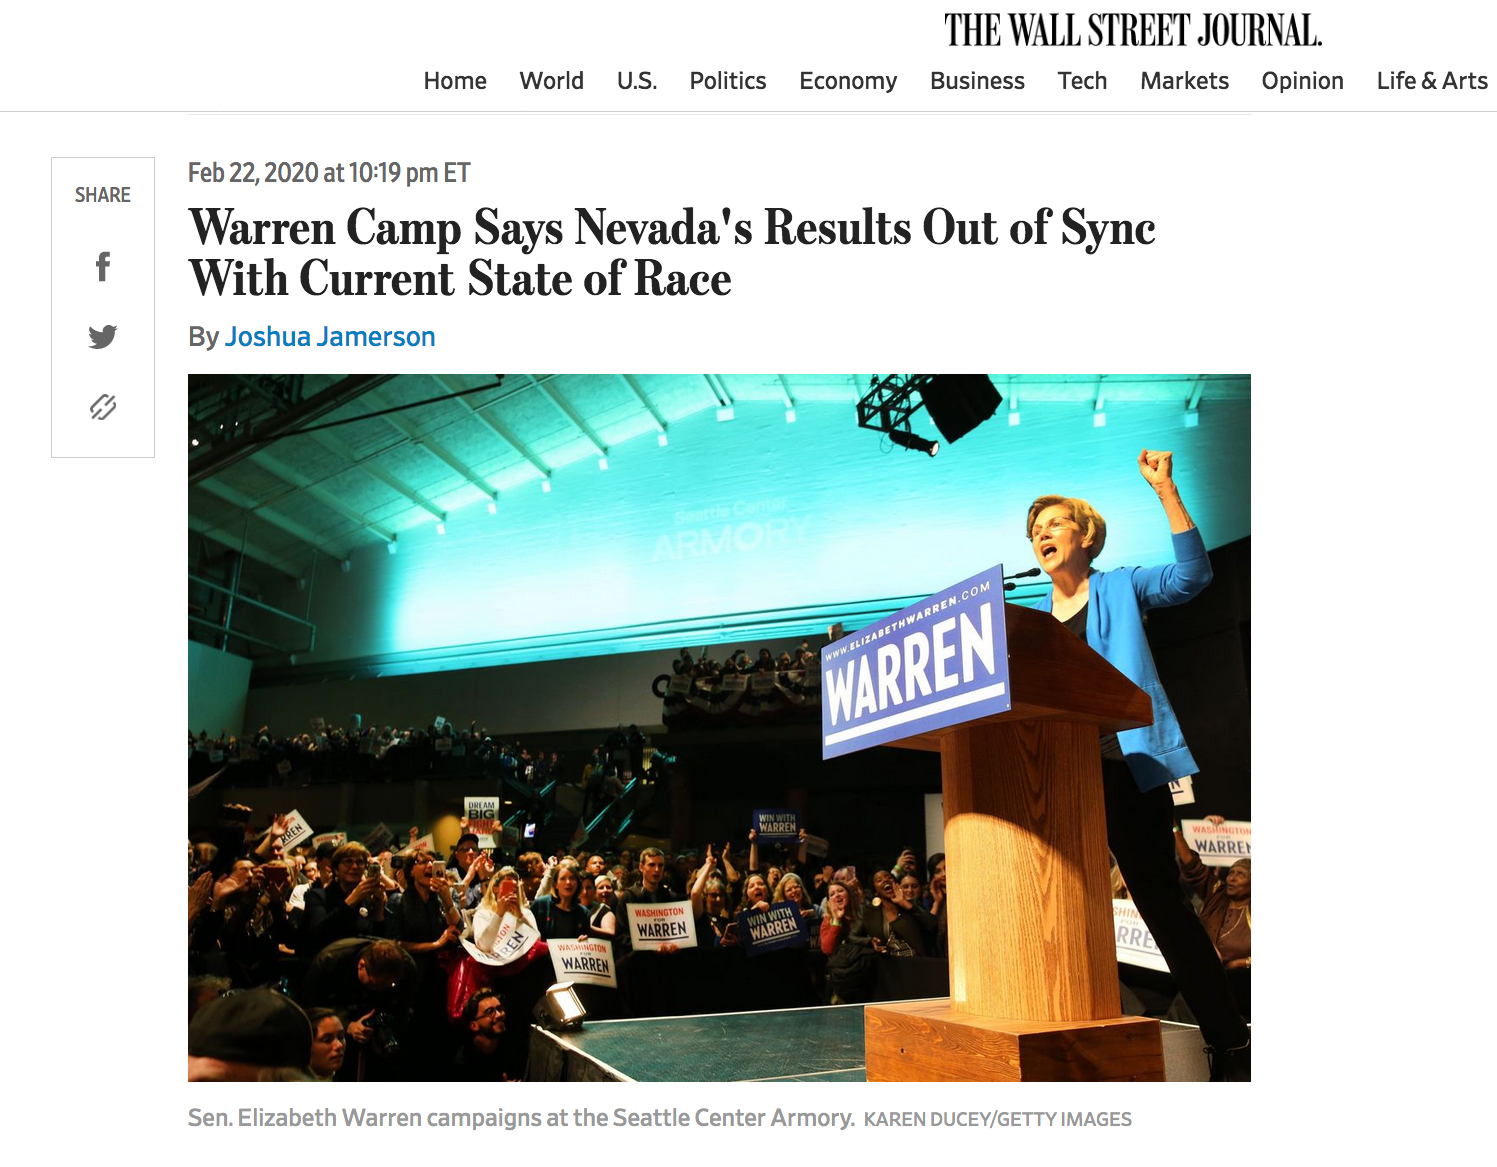 Warren Camp Says Nevada's Results Out of Sync With Current State of Race   Photos for Getty Images, published in the The Wall Street Journal, Feb 22, 2020.